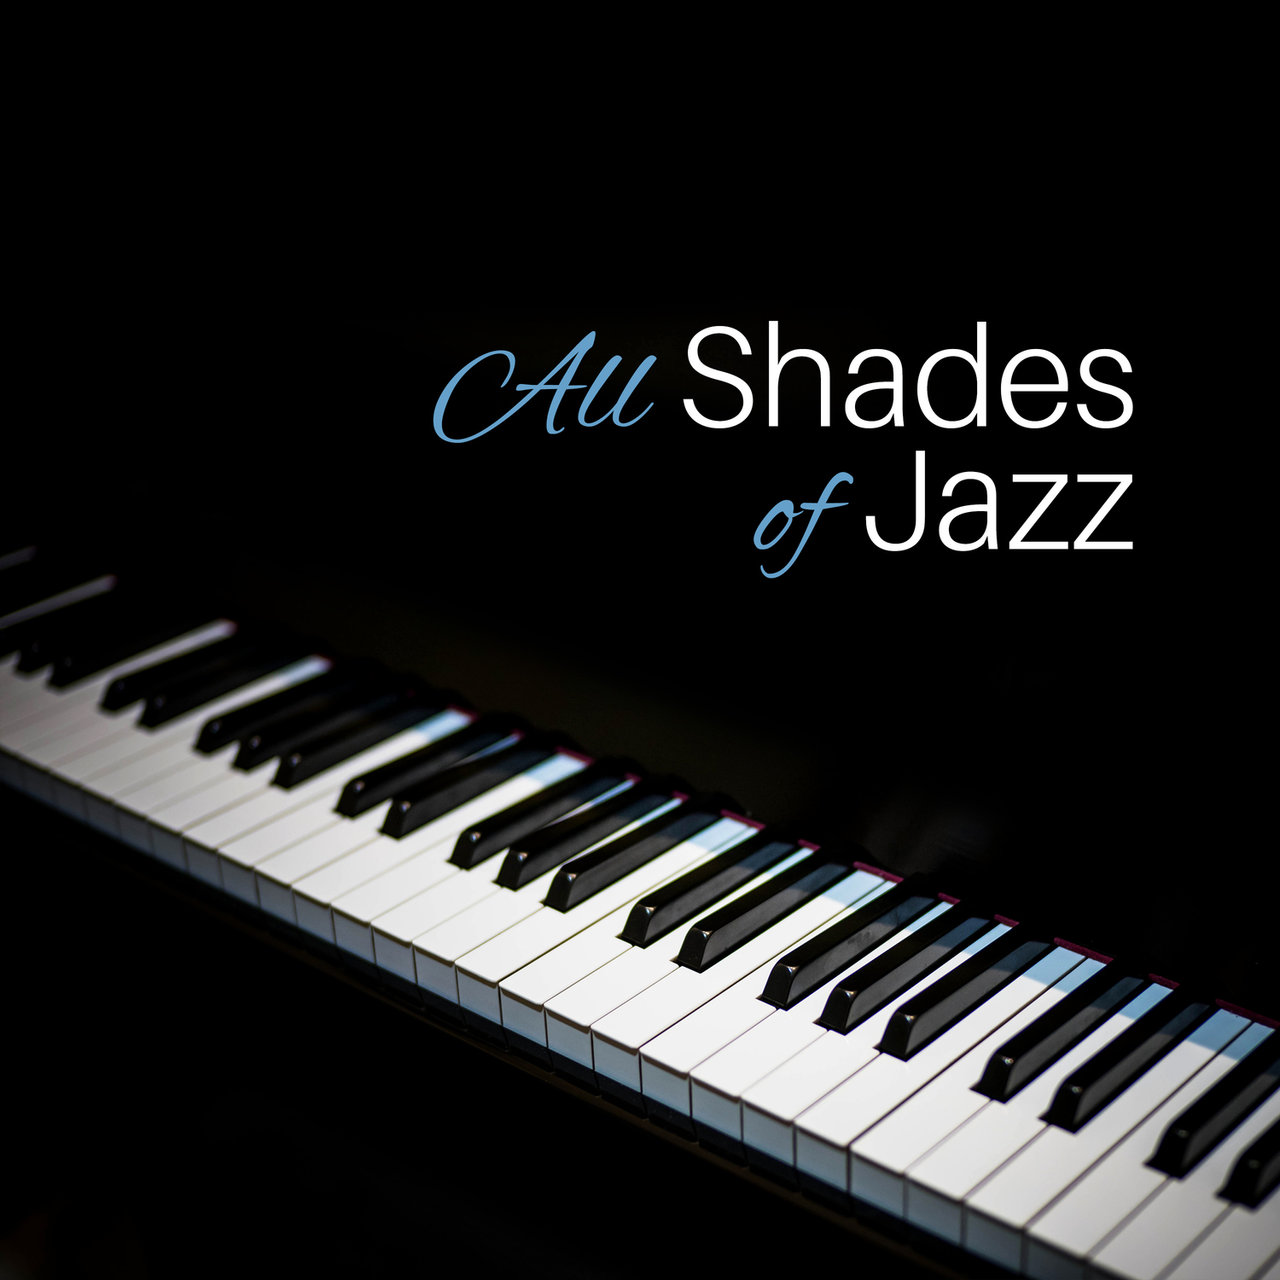 All Shades of Jazz – Classic Jazz Music for Erotic Moments, Sensual Piano  Sounds for